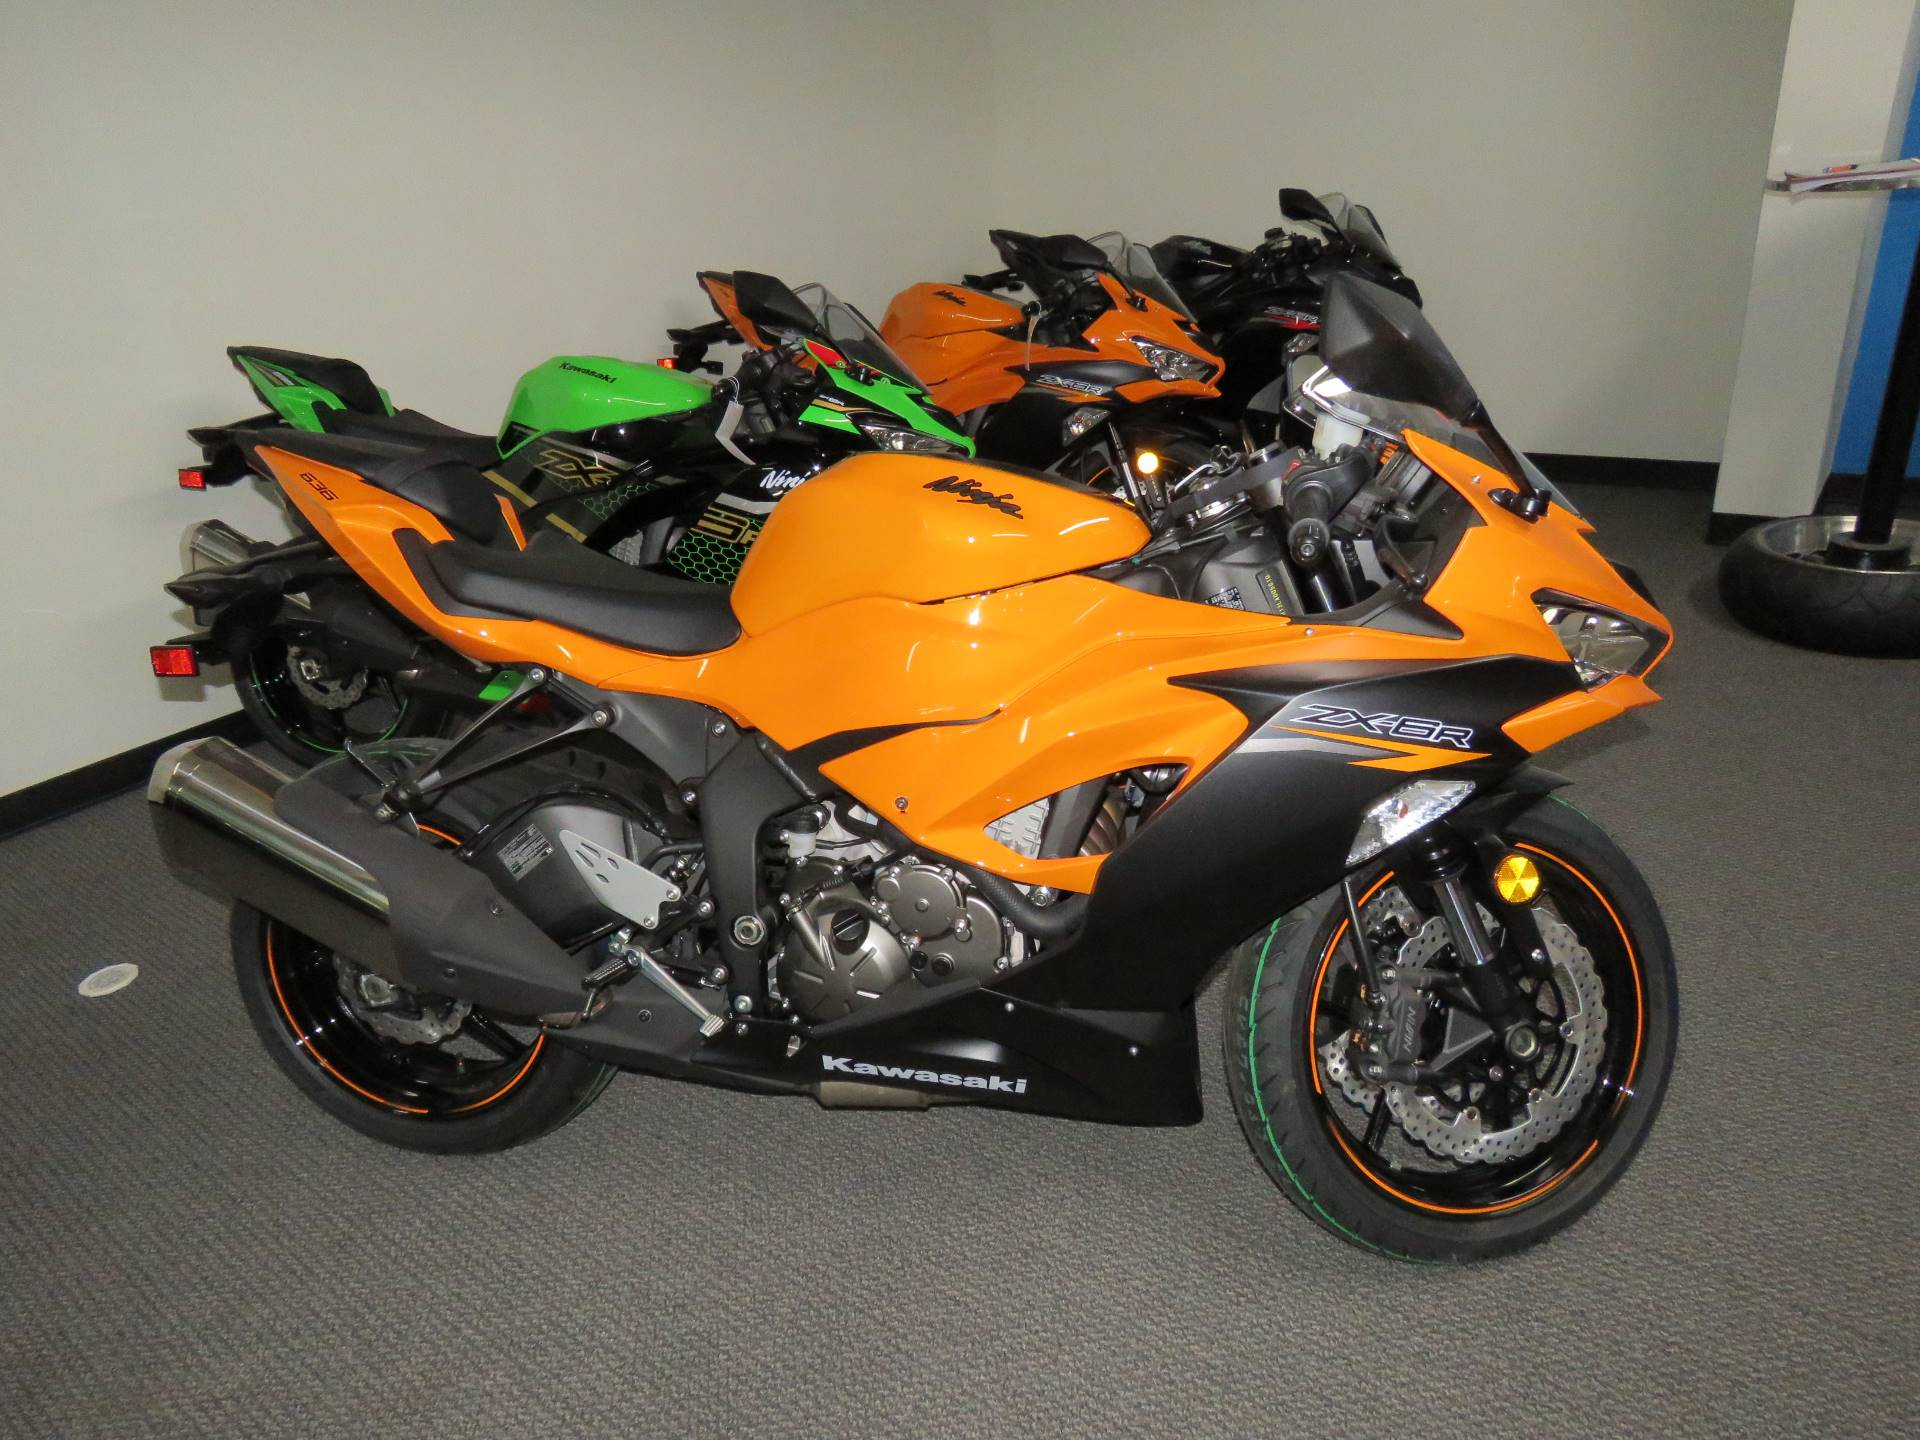 2020 Kawasaki Ninja ZX-6R in Iowa City, Iowa - Photo 4